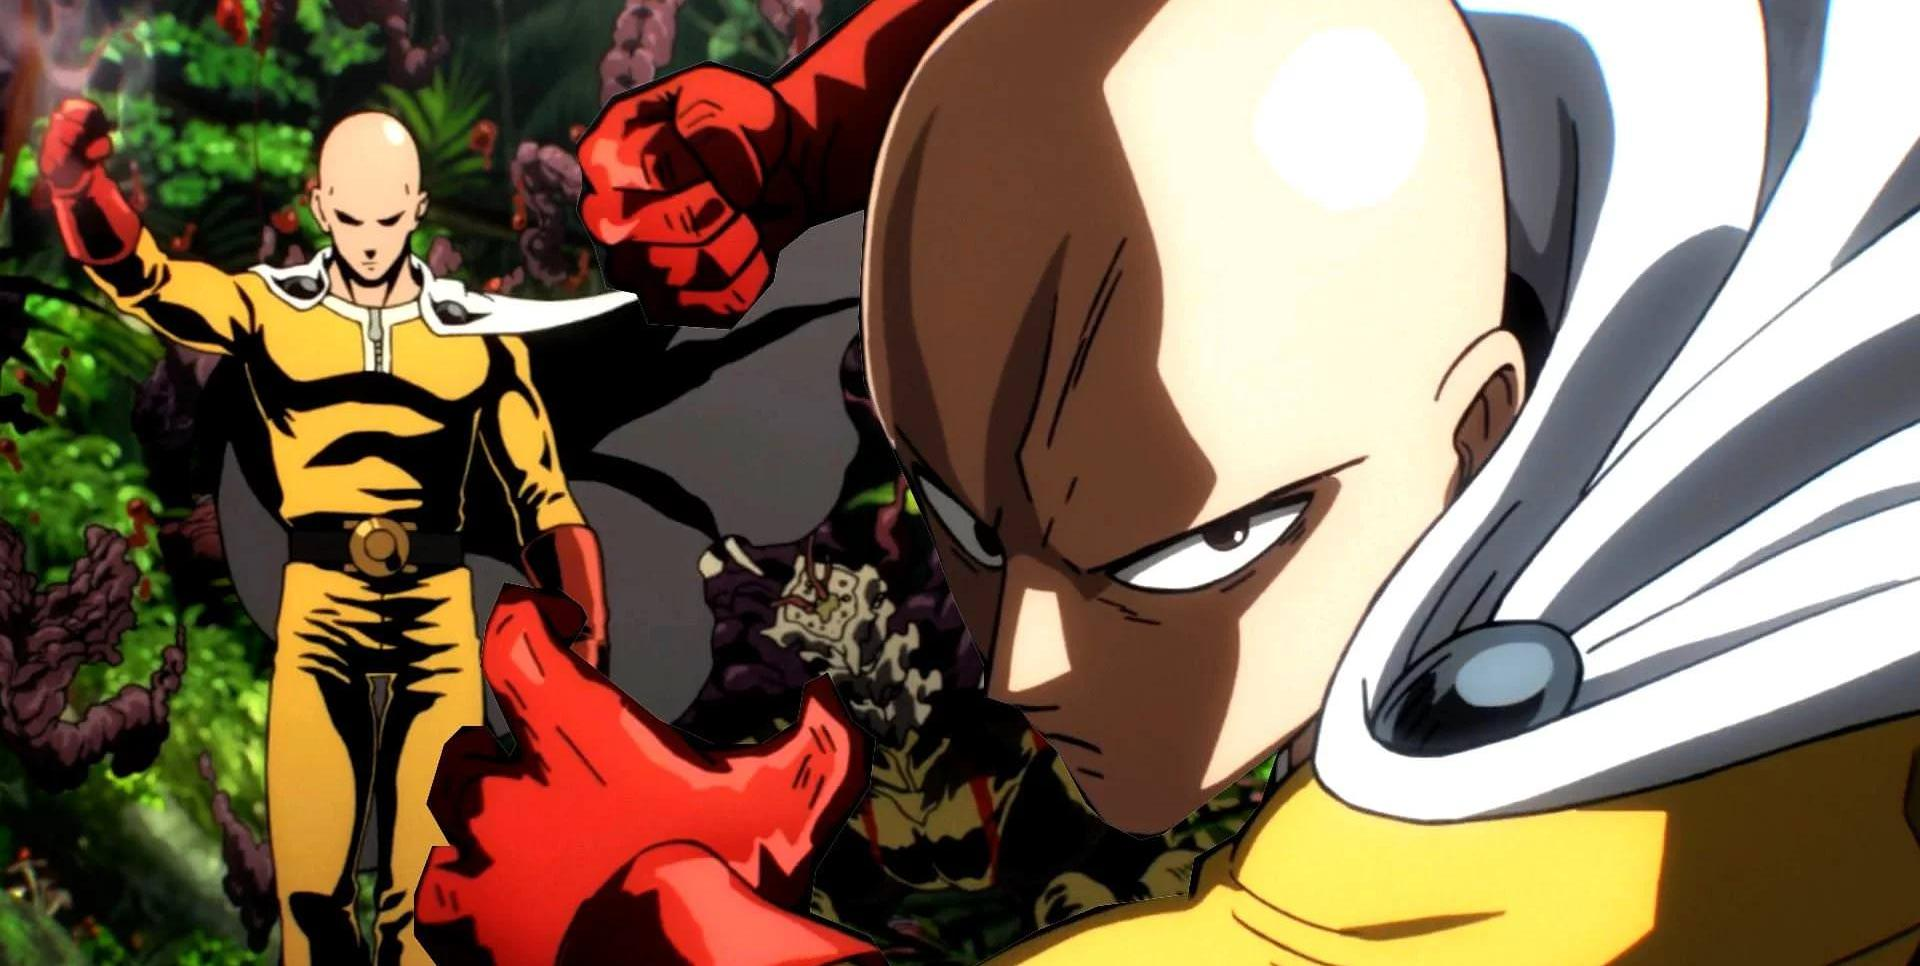 Xem phim One Punch Man 2nd Season - One Punch-Man 2, One-Punch Man 2, OPM 2 Vietsub